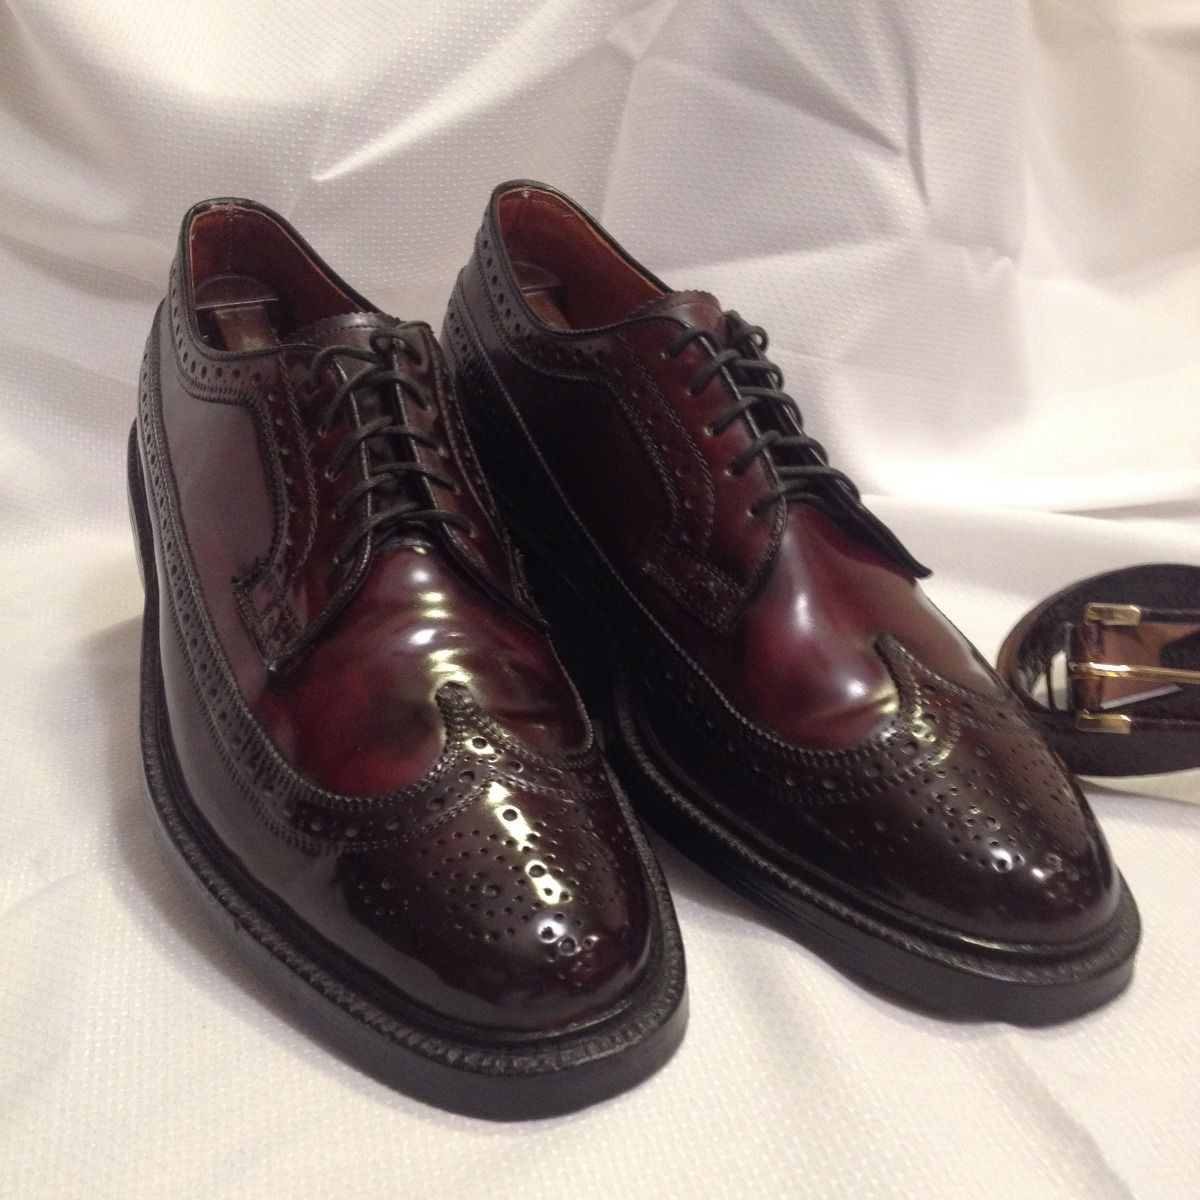 Nettleton Shell Cordovan 0208 Traditionals